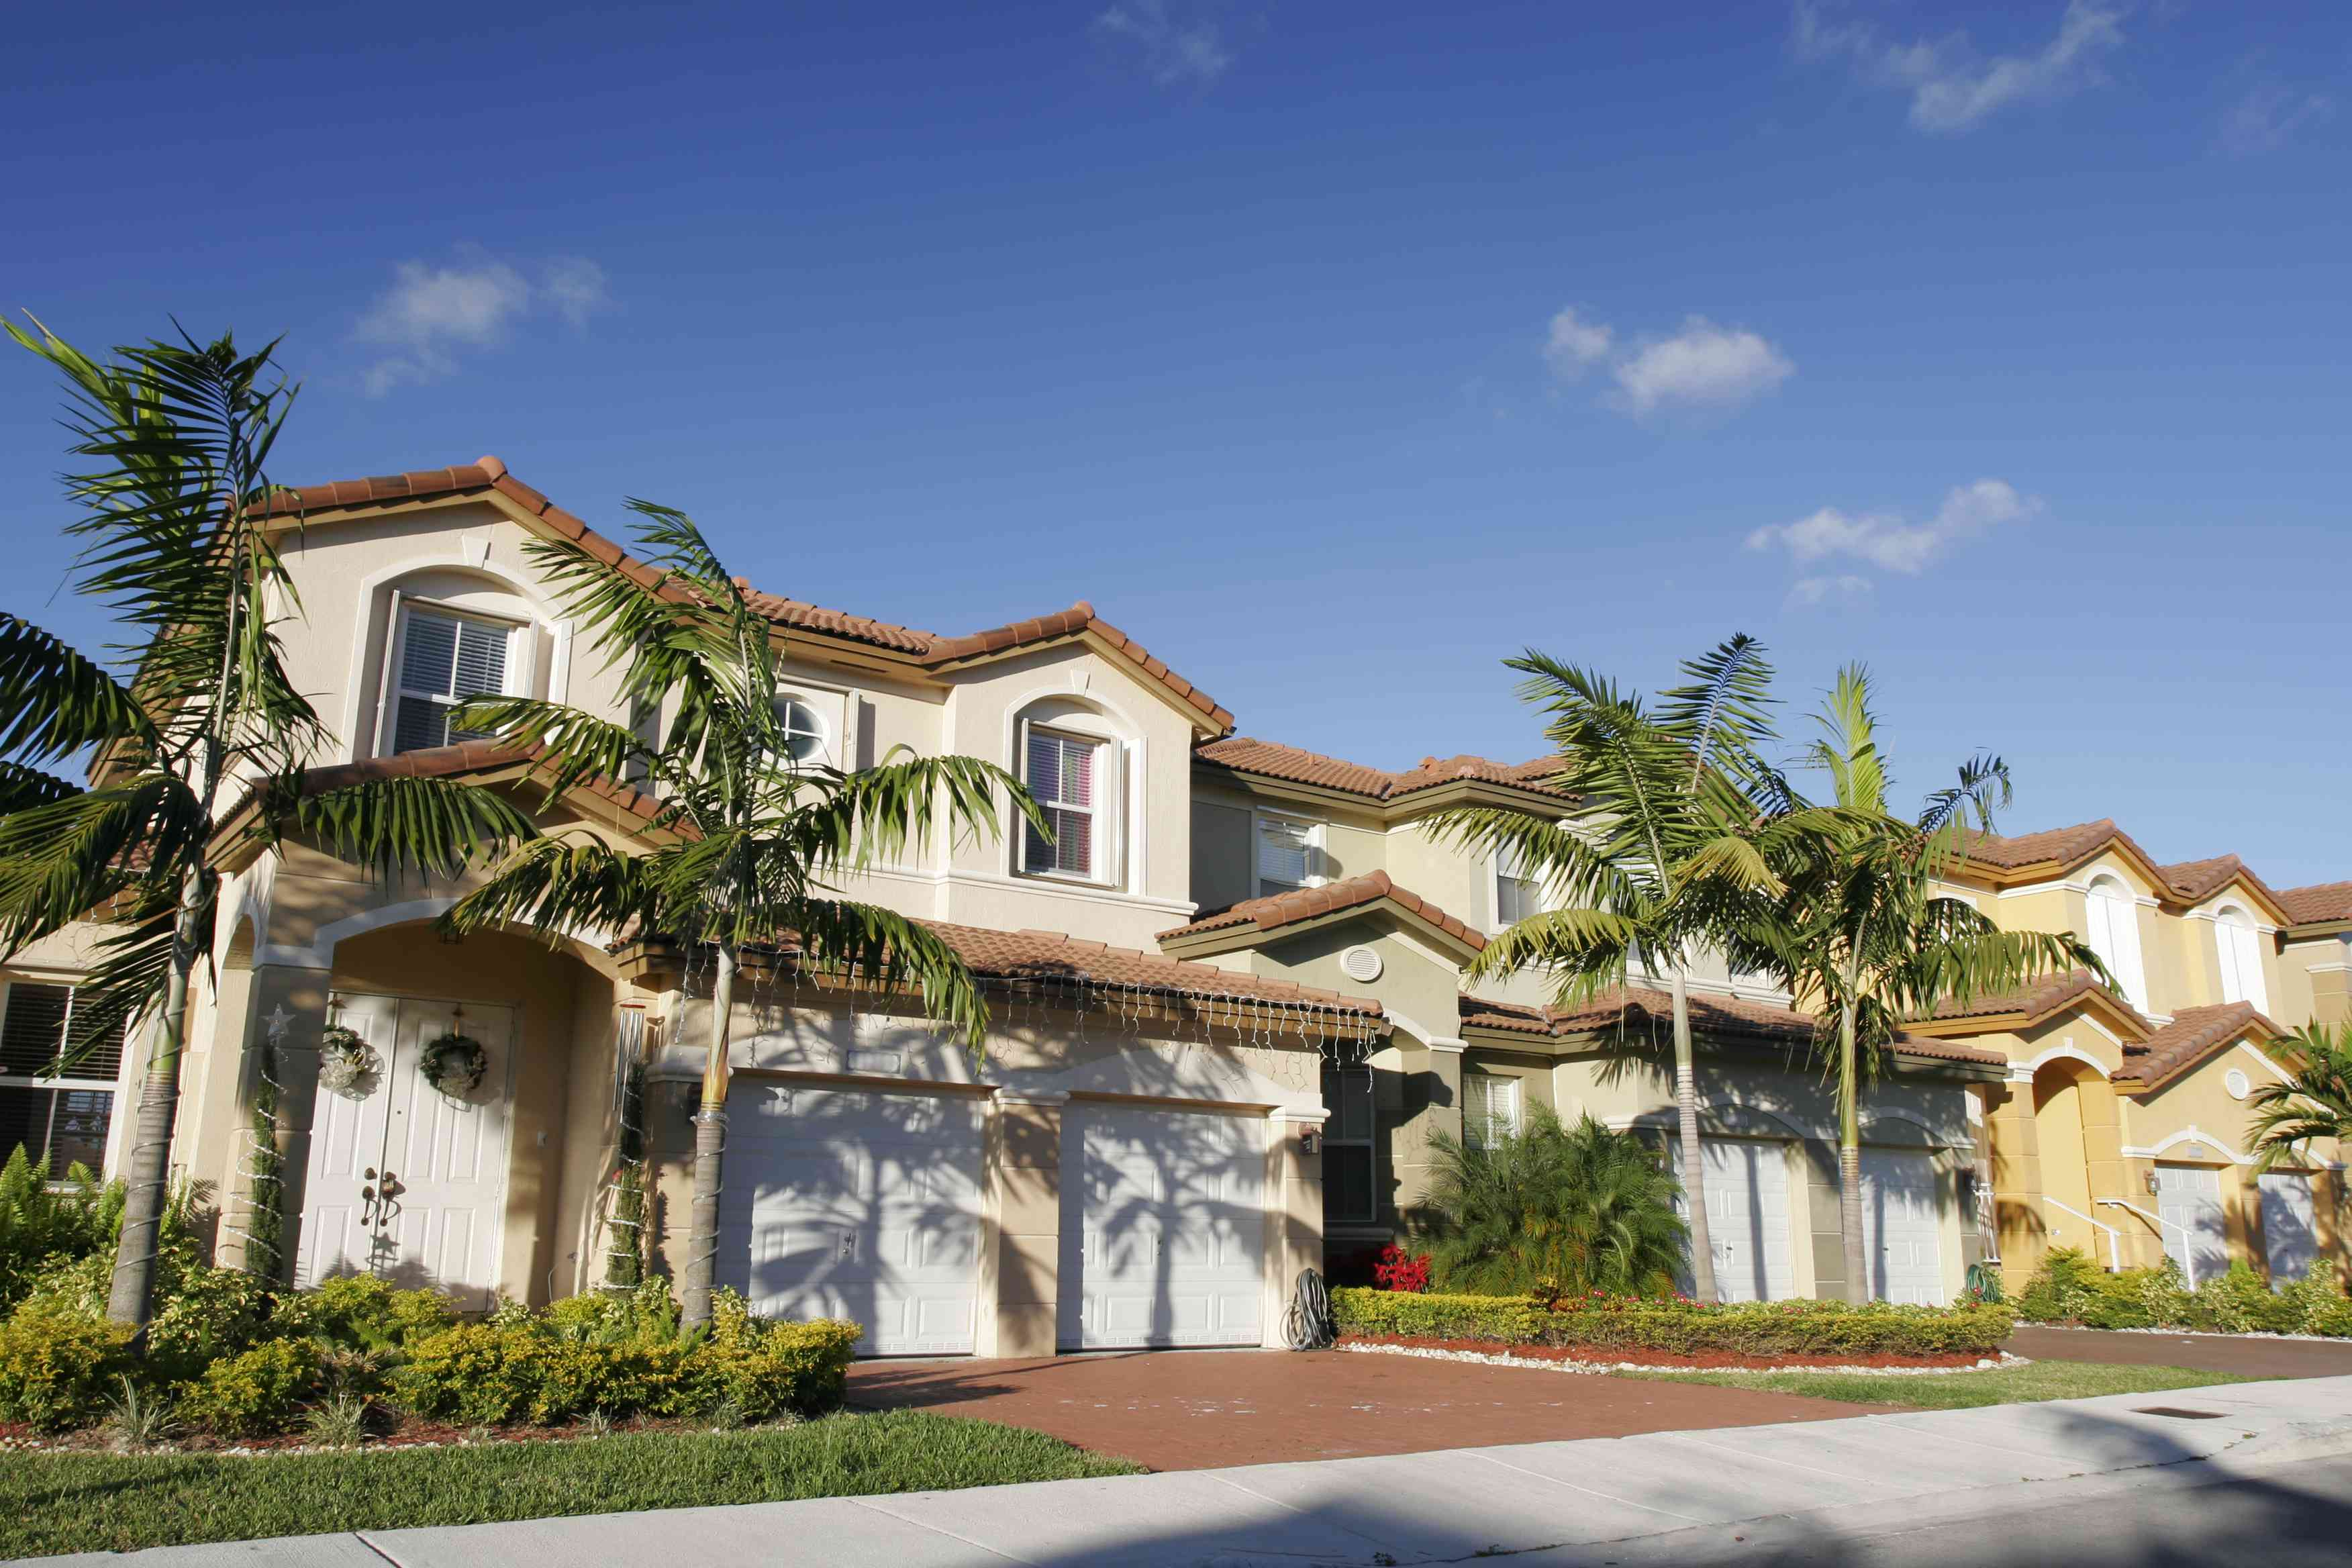 a row of Mediterranean-style homes